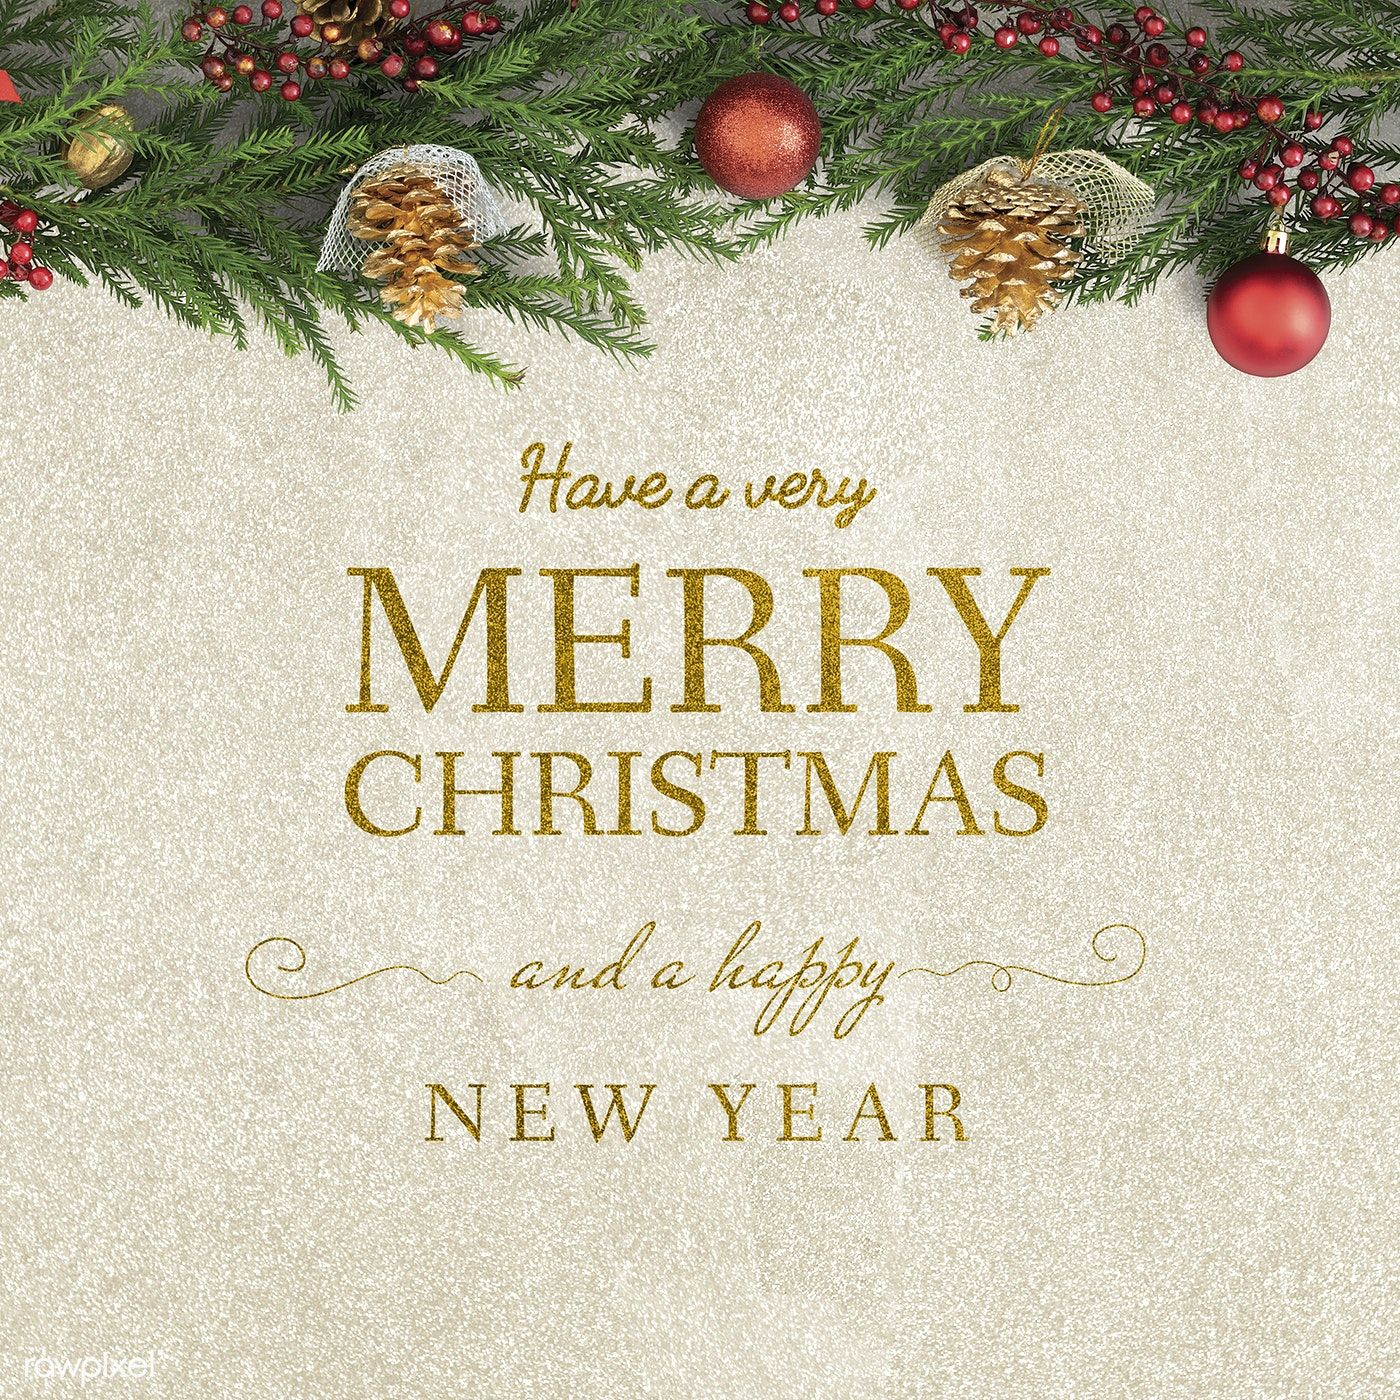 Download premium image of Merry Christmas and Happy New